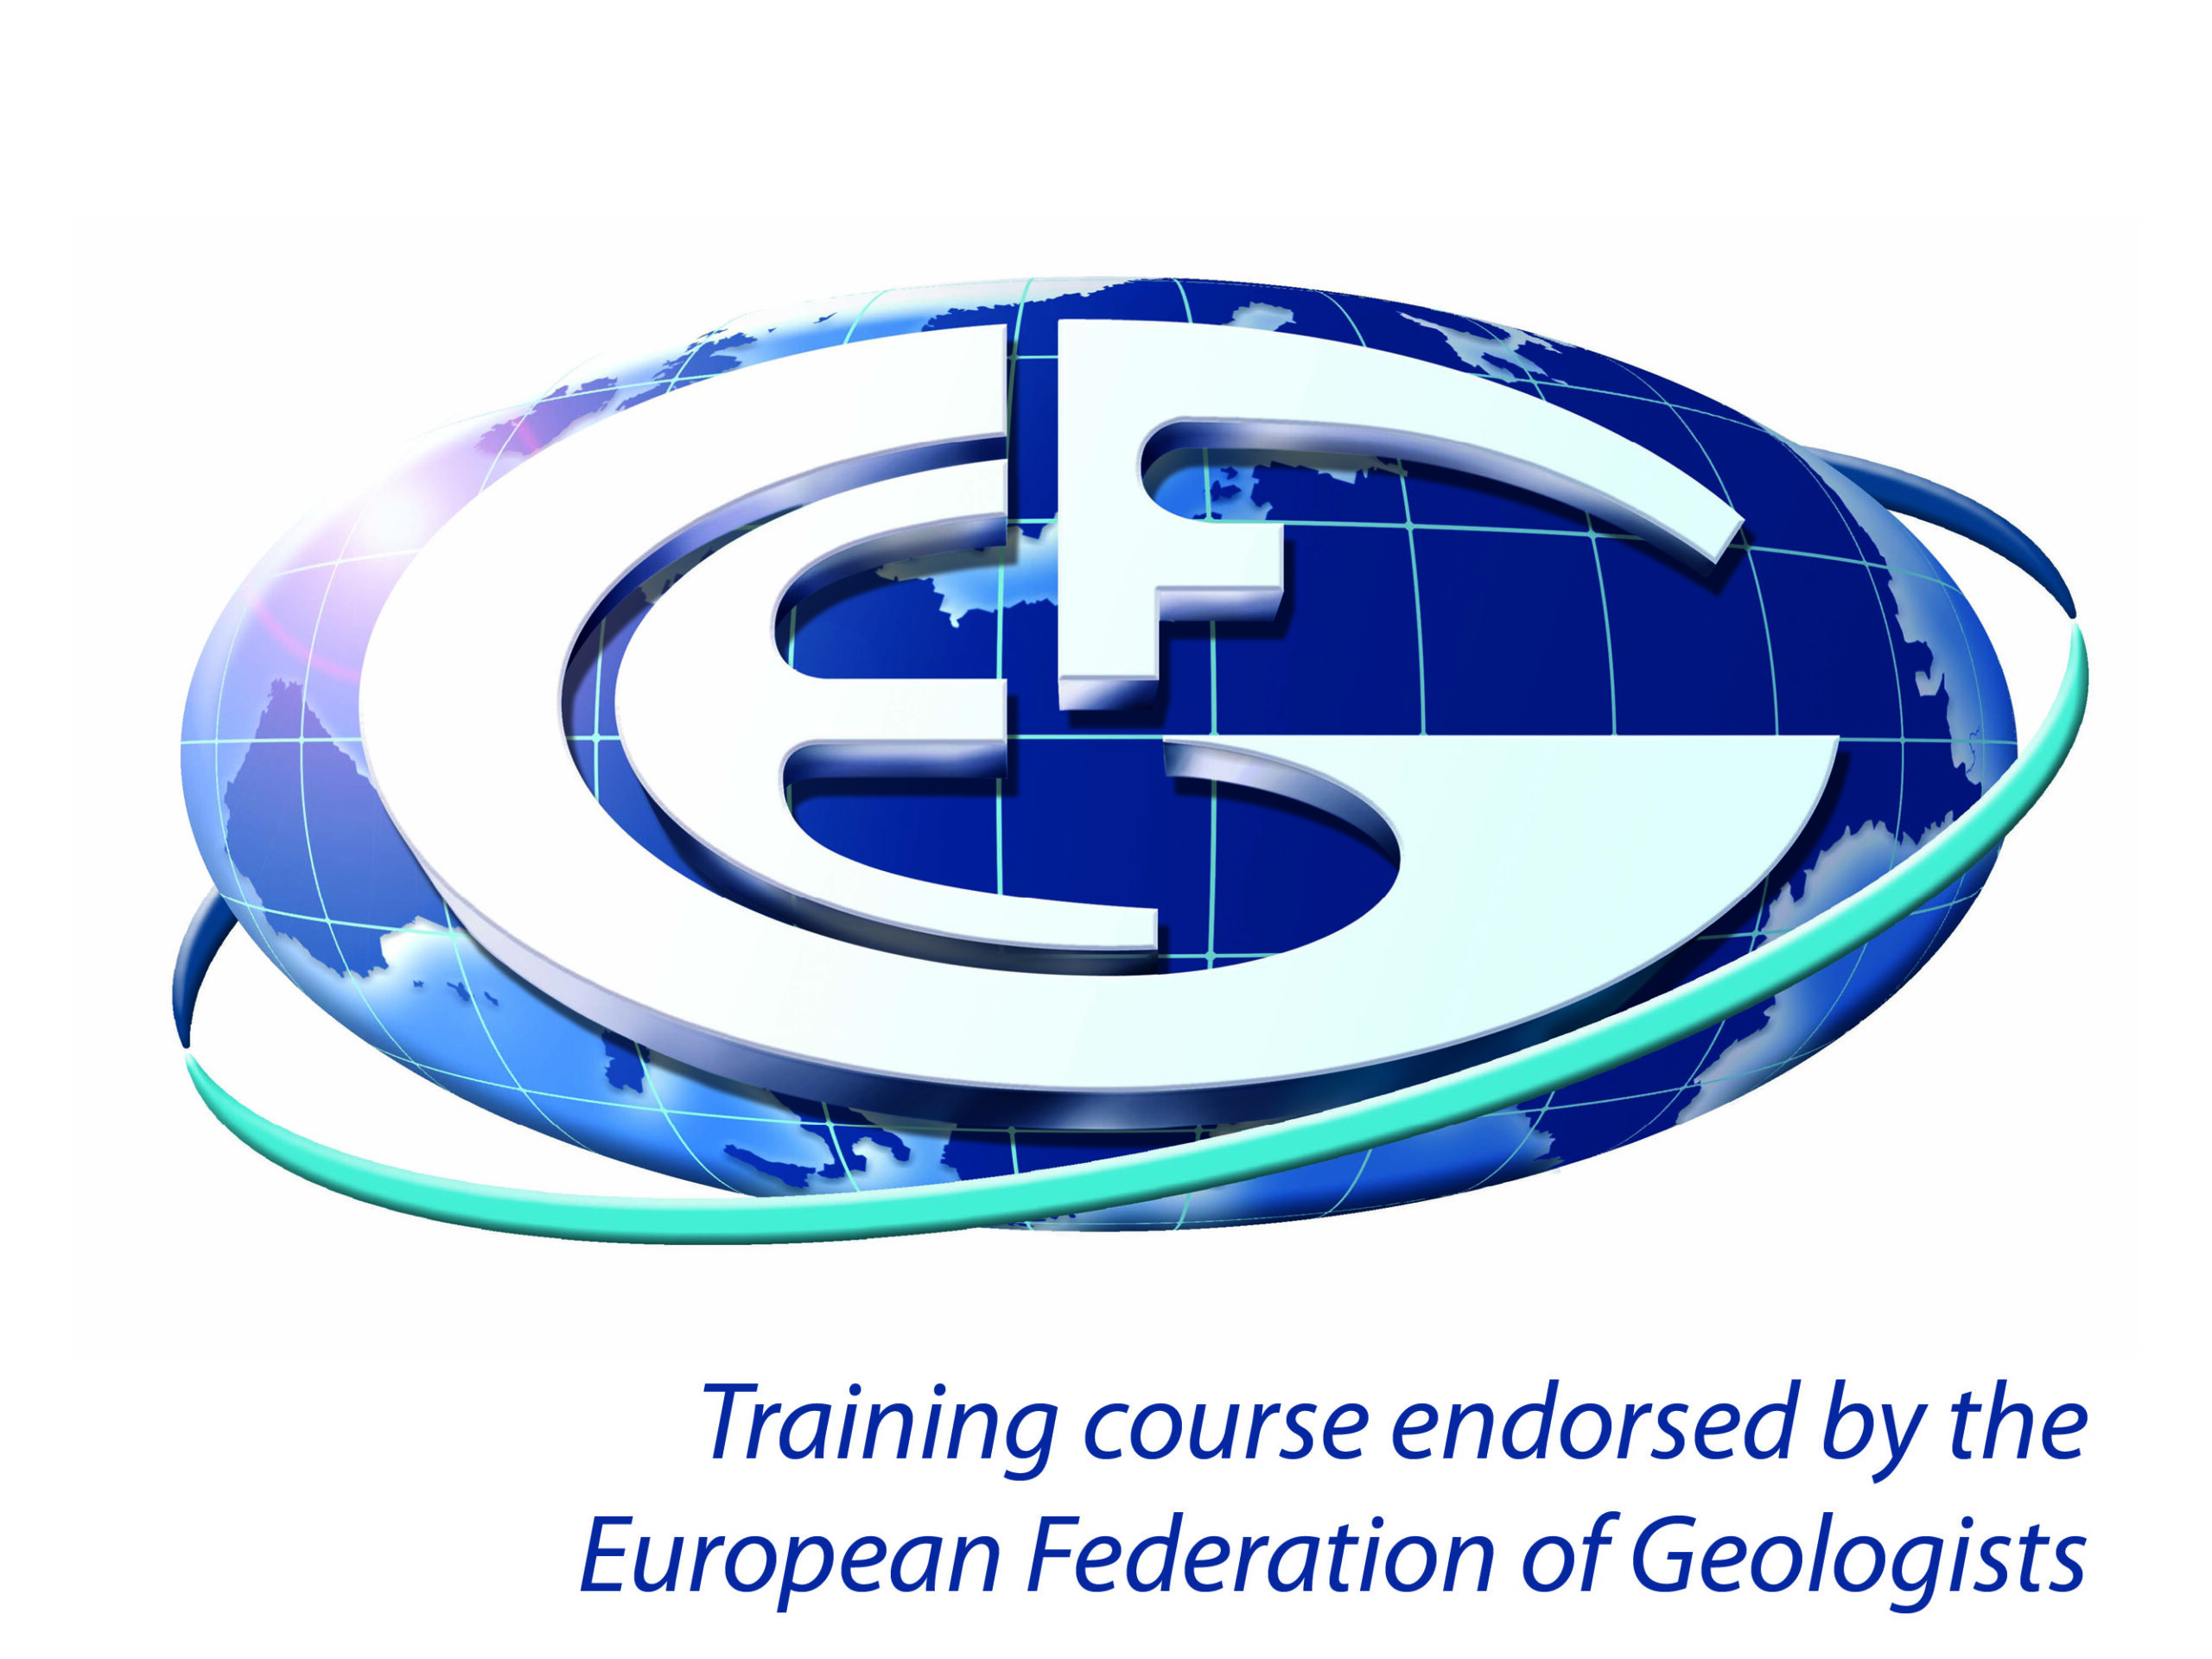 Training course endorsed by the European Federation of Geologists